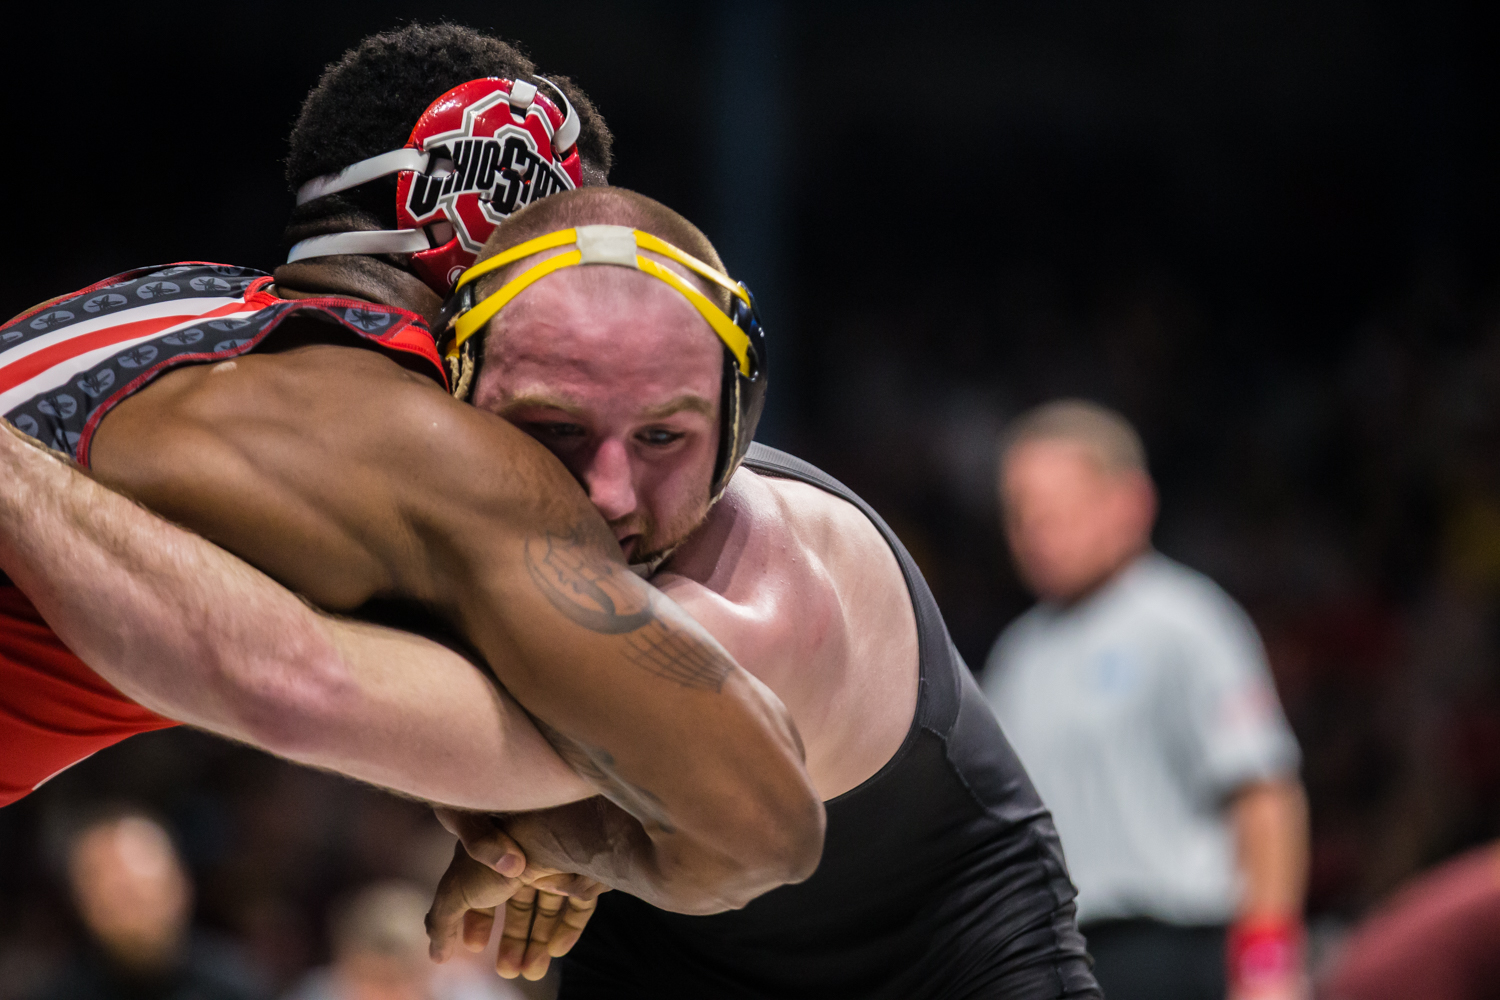 Iowa's 165-lb Alex Marinelli wrestles Ohio State's Te'Shan Campbell during the first session of the 2019 Big Ten Wrestling Championships in Minneapolis, MN on Saturday, March 9, 2019. Marinelli won by decision, 6-3.